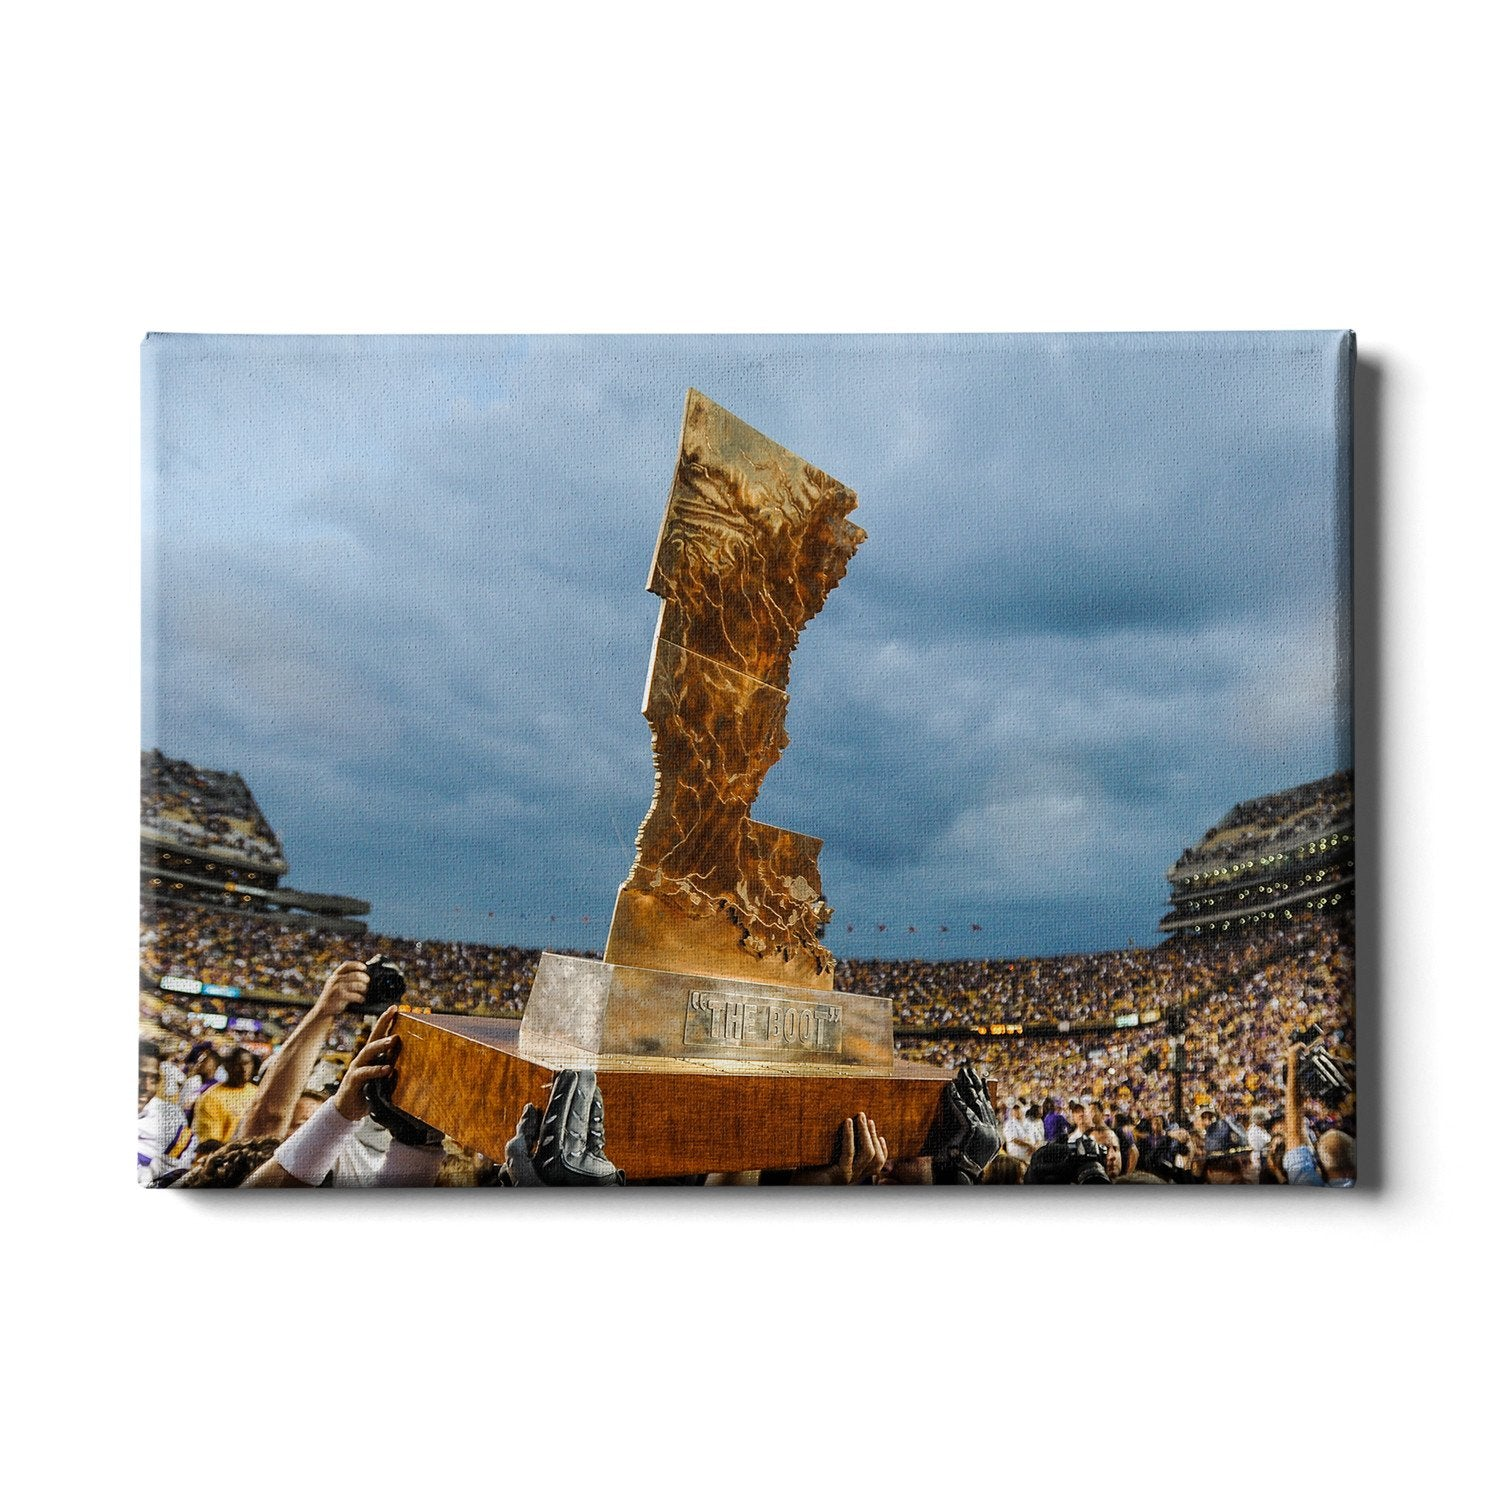 LSU Tigers - The Boot #Canvas